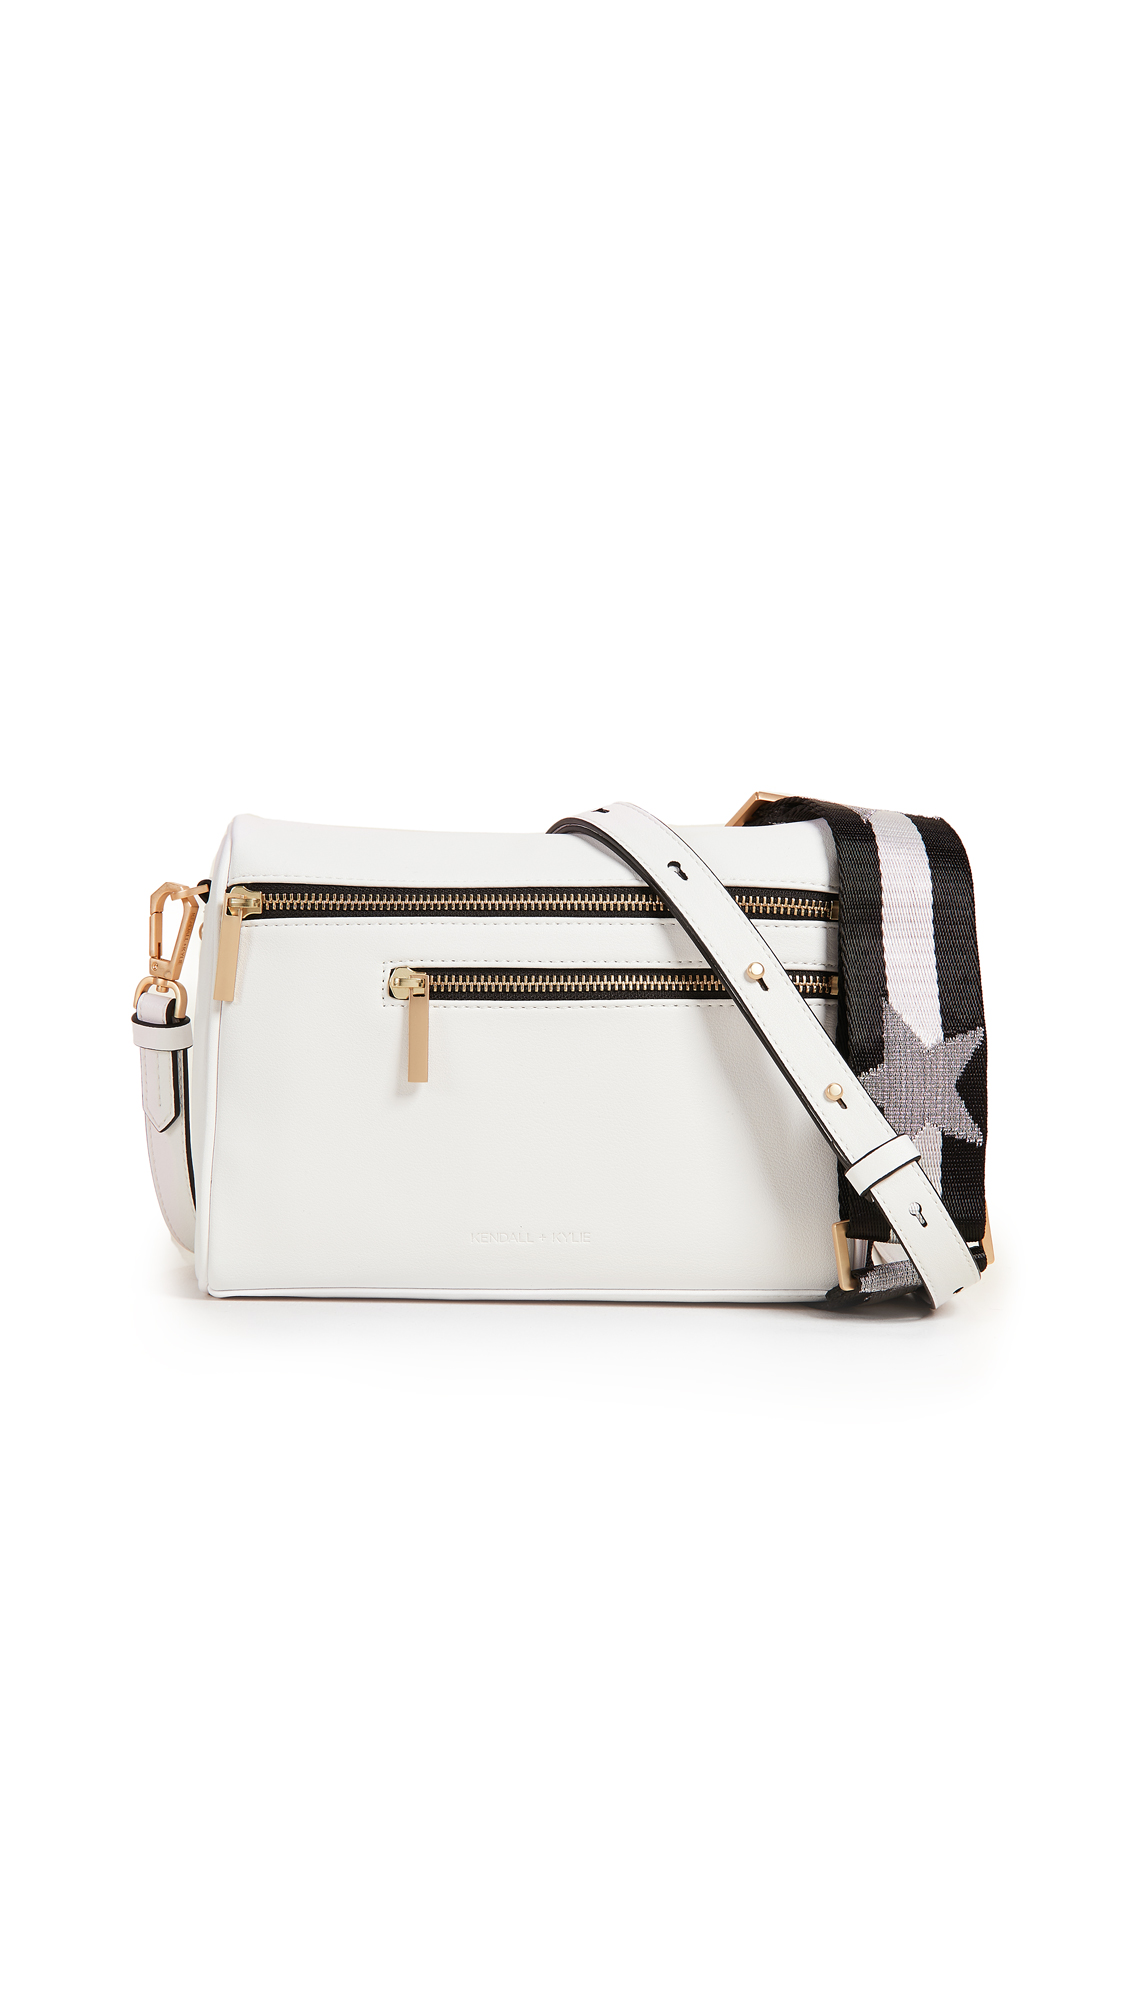 Courtney Cross Body Bag Kendall + Kylie Amazing With Credit Card Online Outlet Best Store To Get Free Shipping Shop Outlet Low Price Fee Shipping jaFVFu0trh